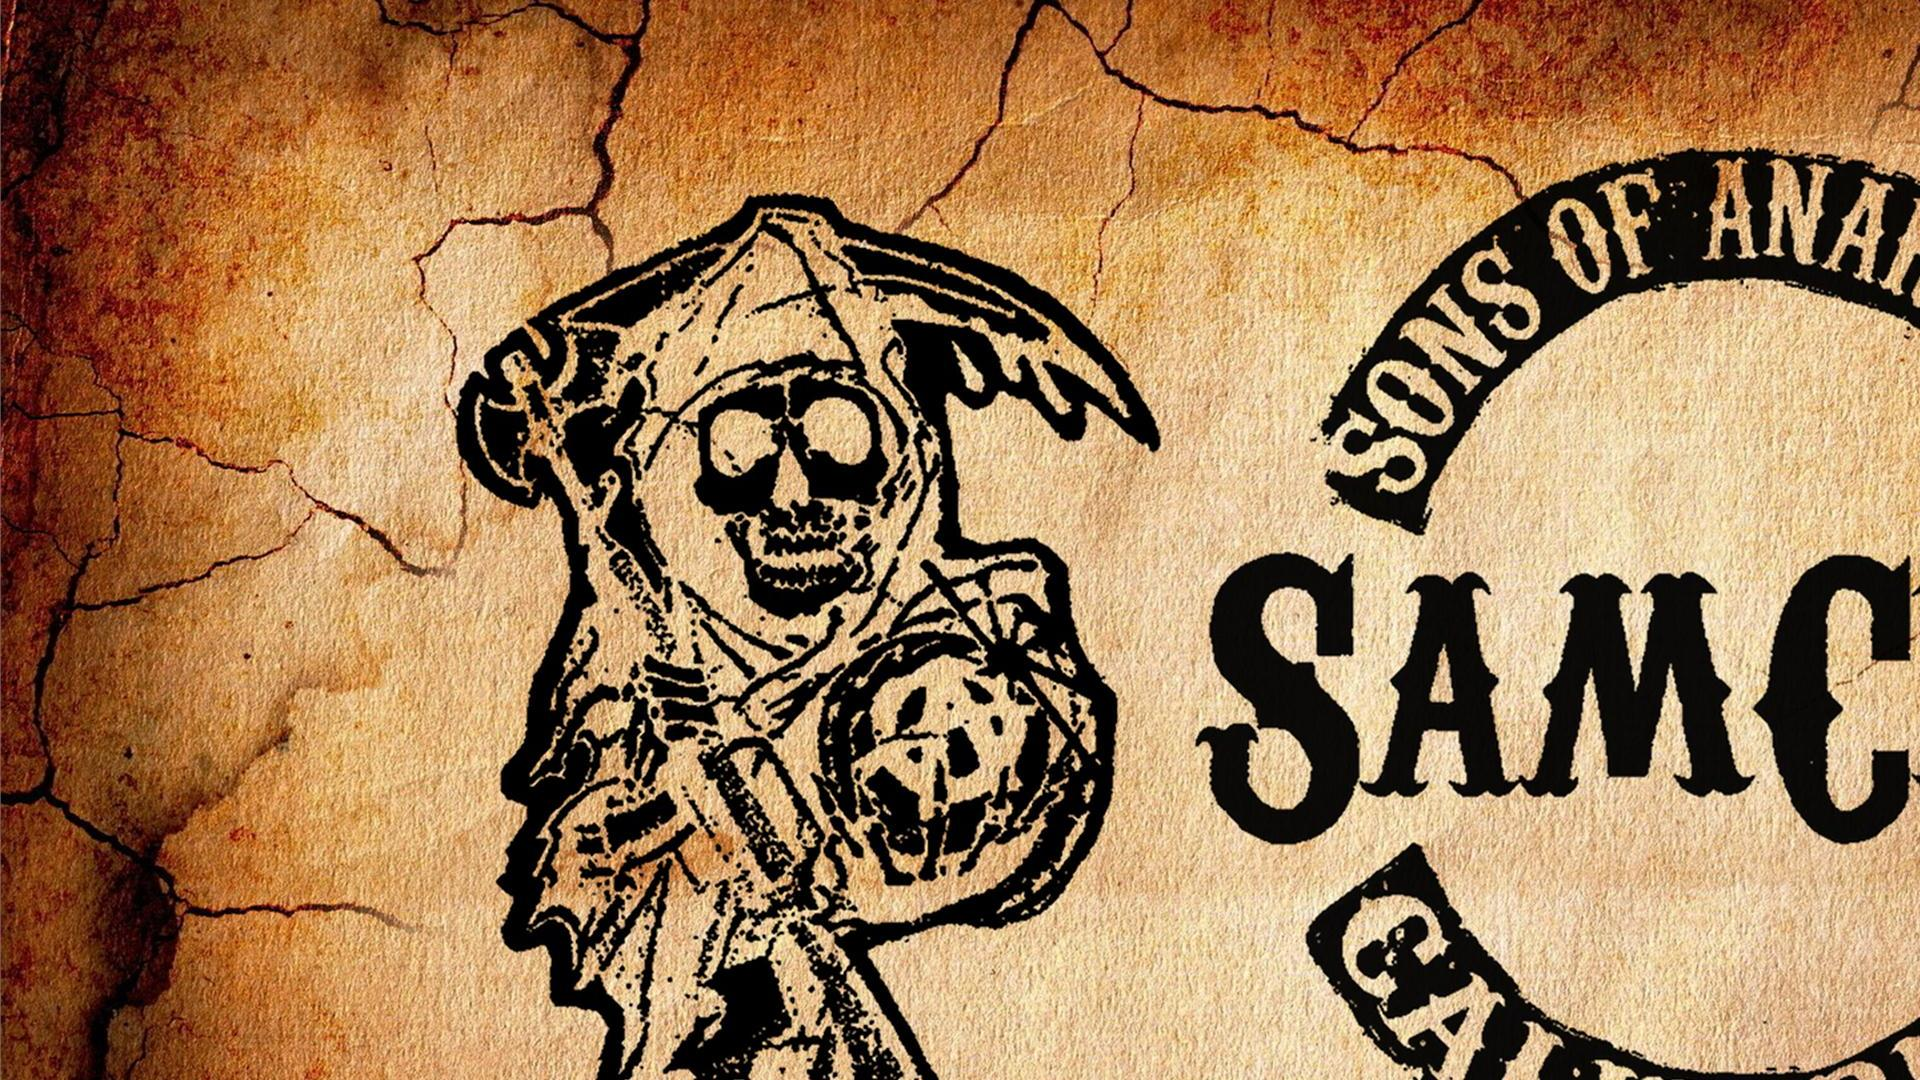 Sons of anarchy hd wallpapers for desktop download sons of anarchy high resolution wallpapers voltagebd Choice Image